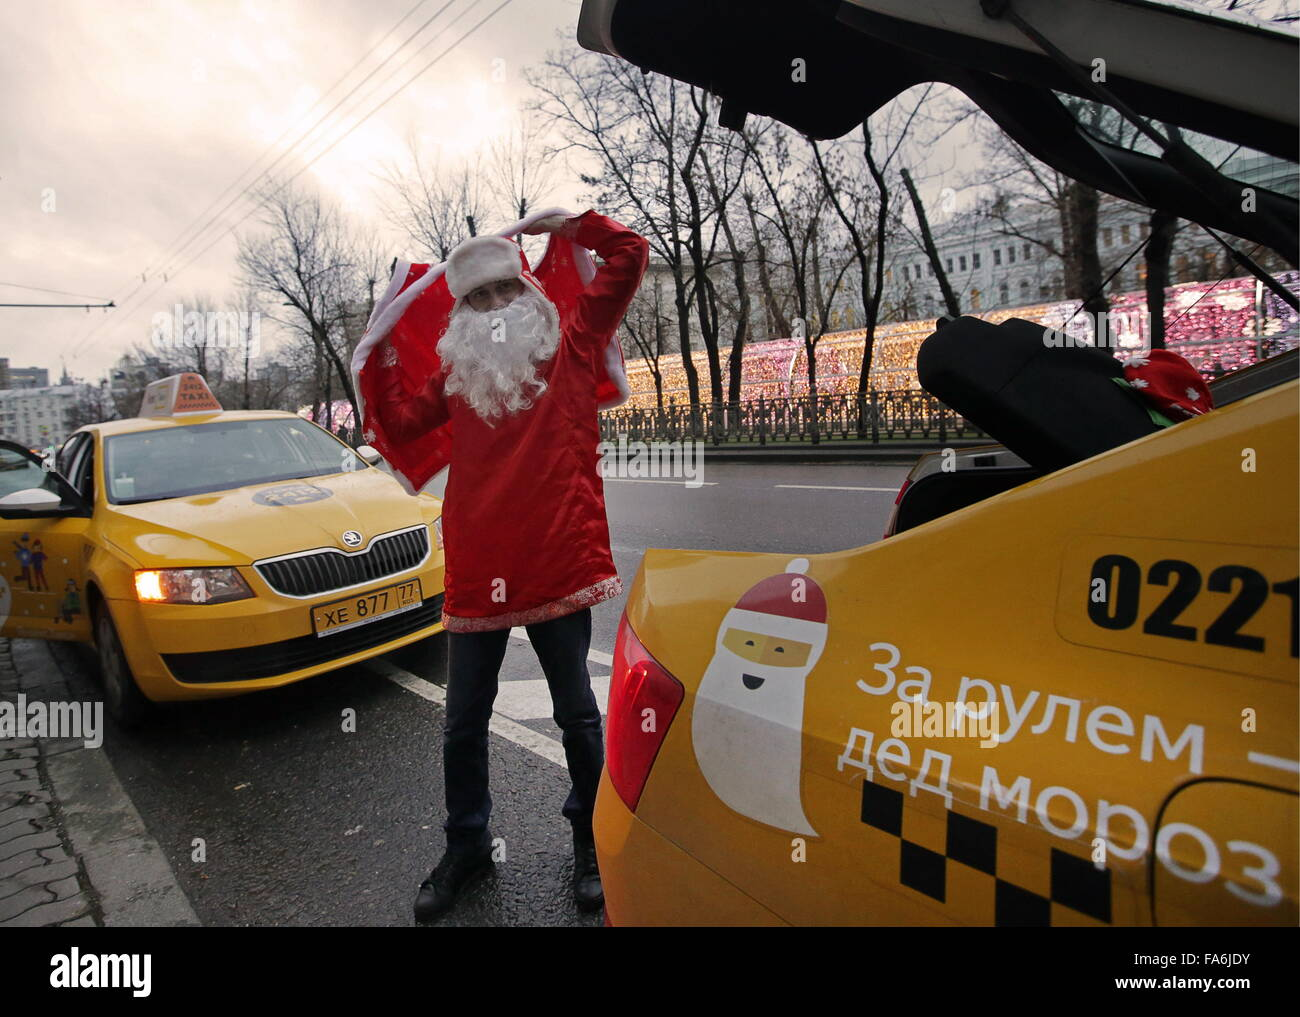 MOSCOW, RUSSIA  DECEMBER 22, 2015  A Yandex Taxi driver